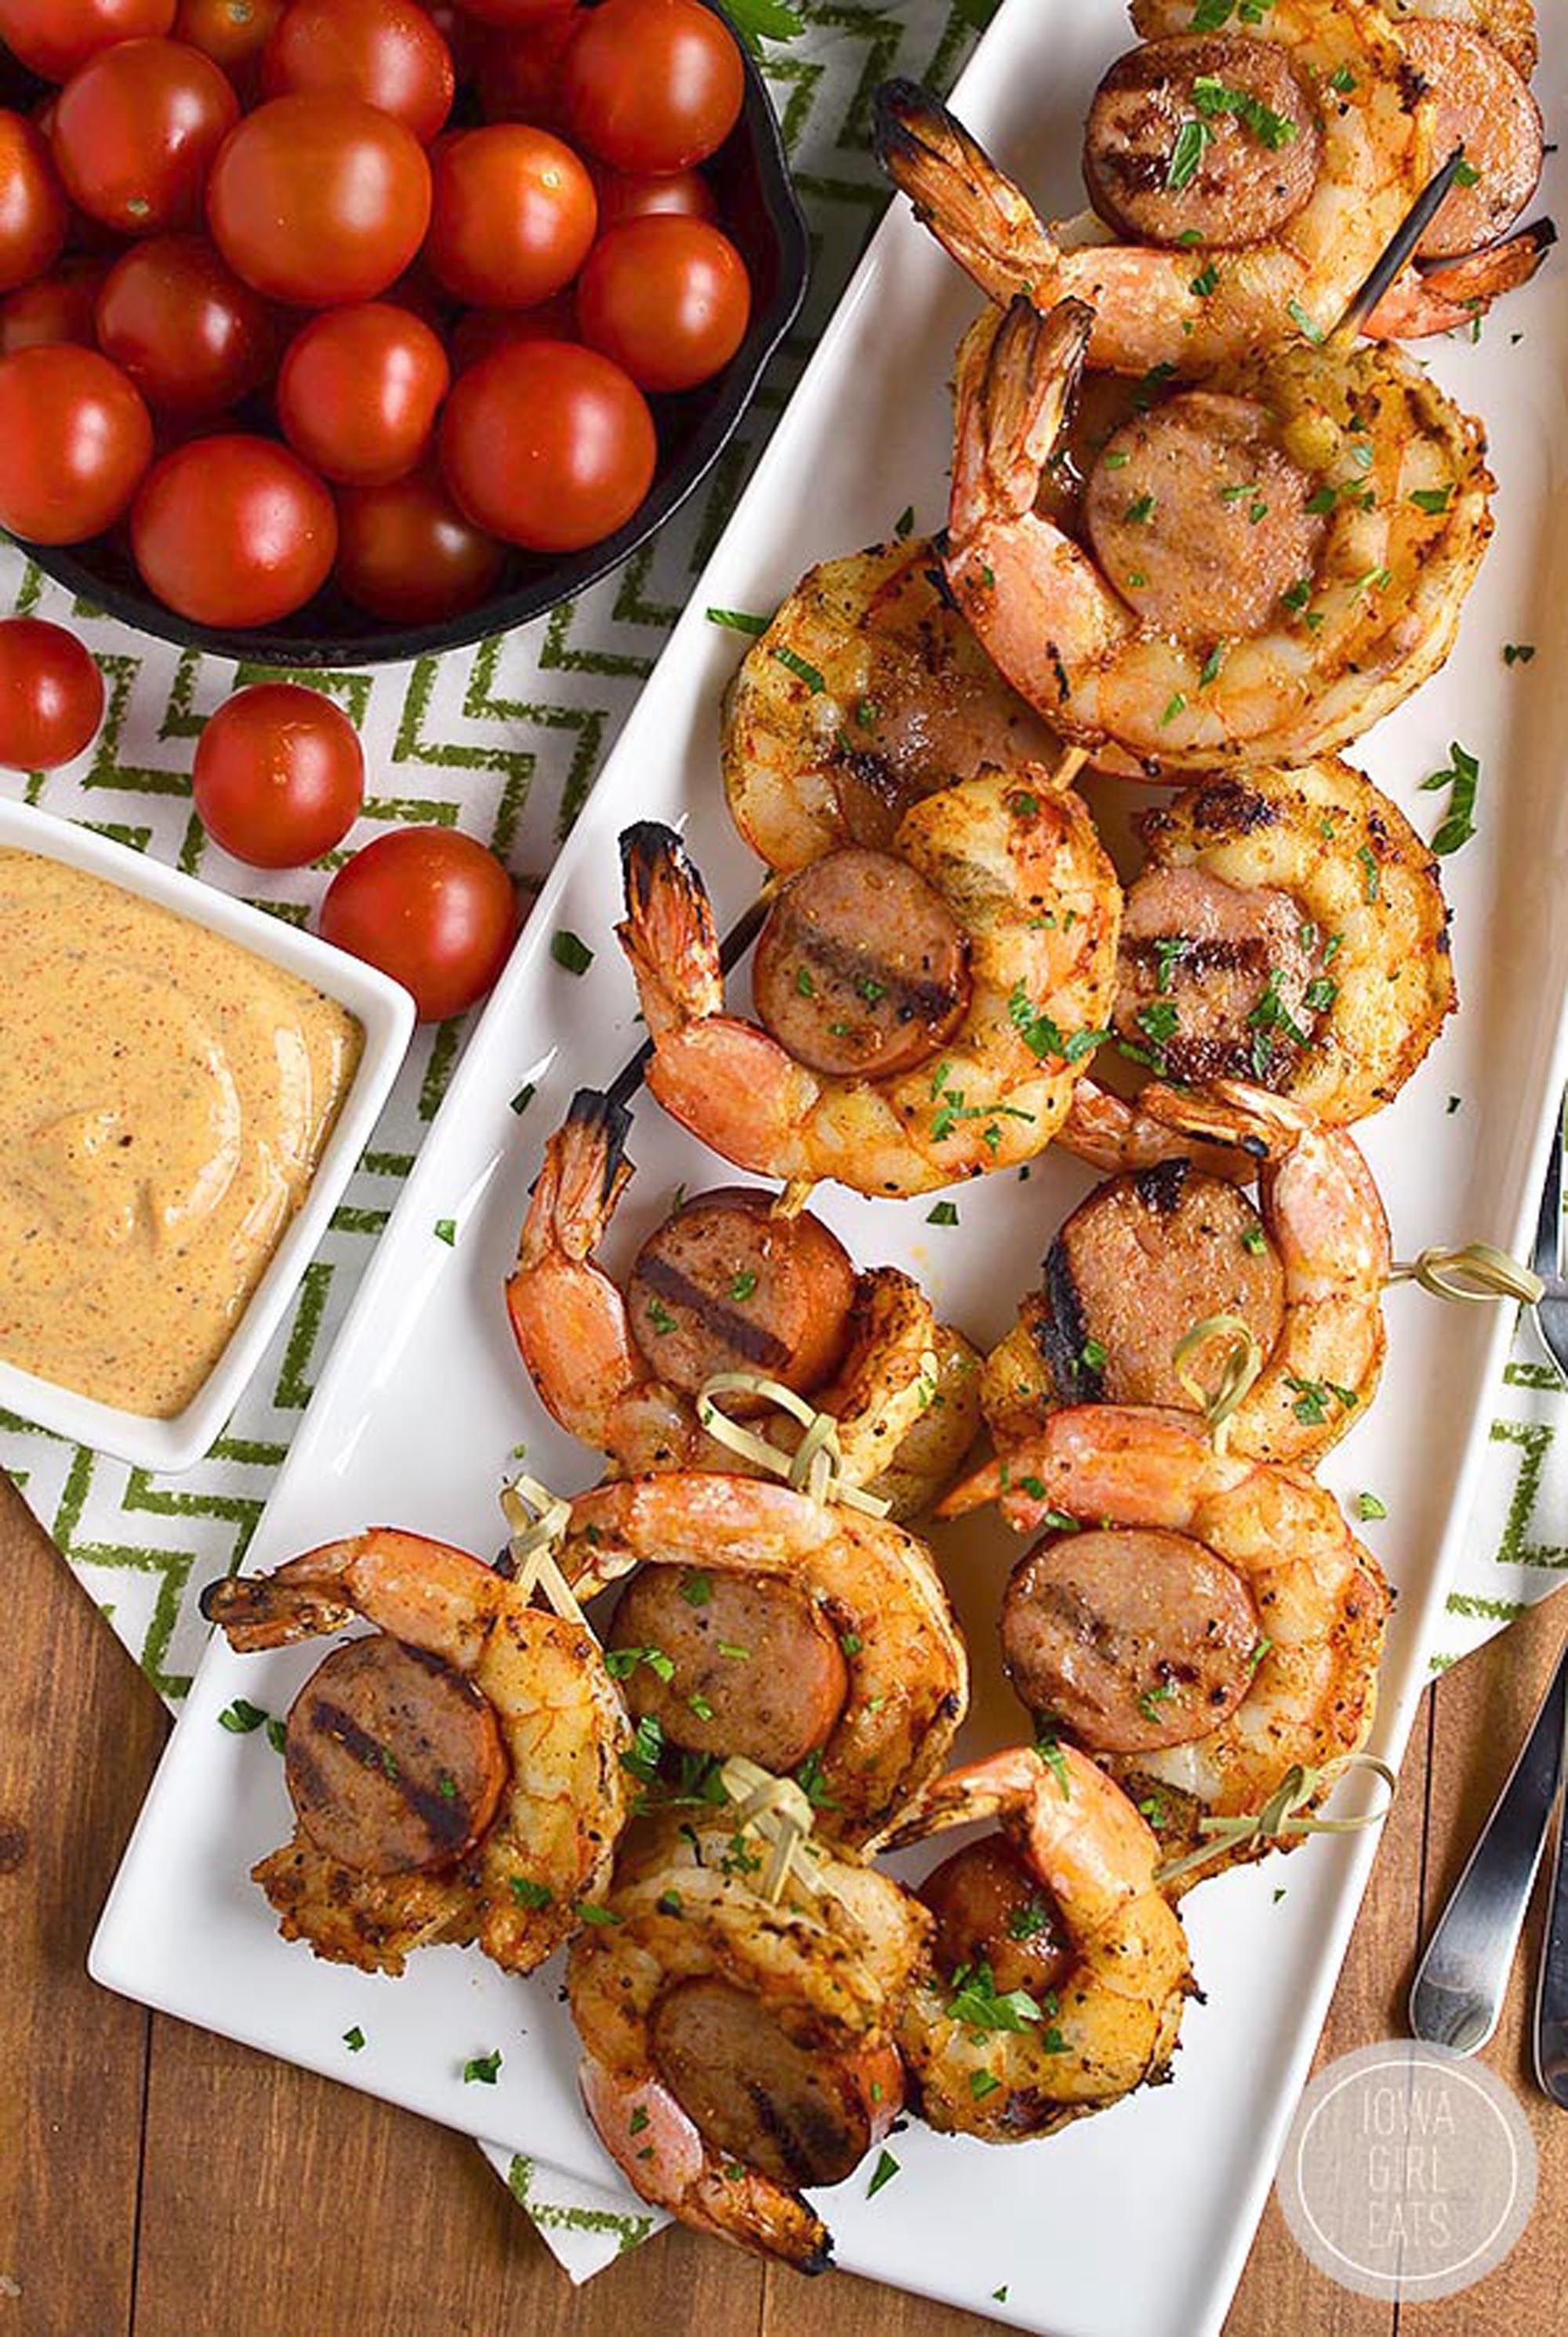 46 Easy Memorial Day Recipes - Best Food Ideas for Your Memorial Day ...